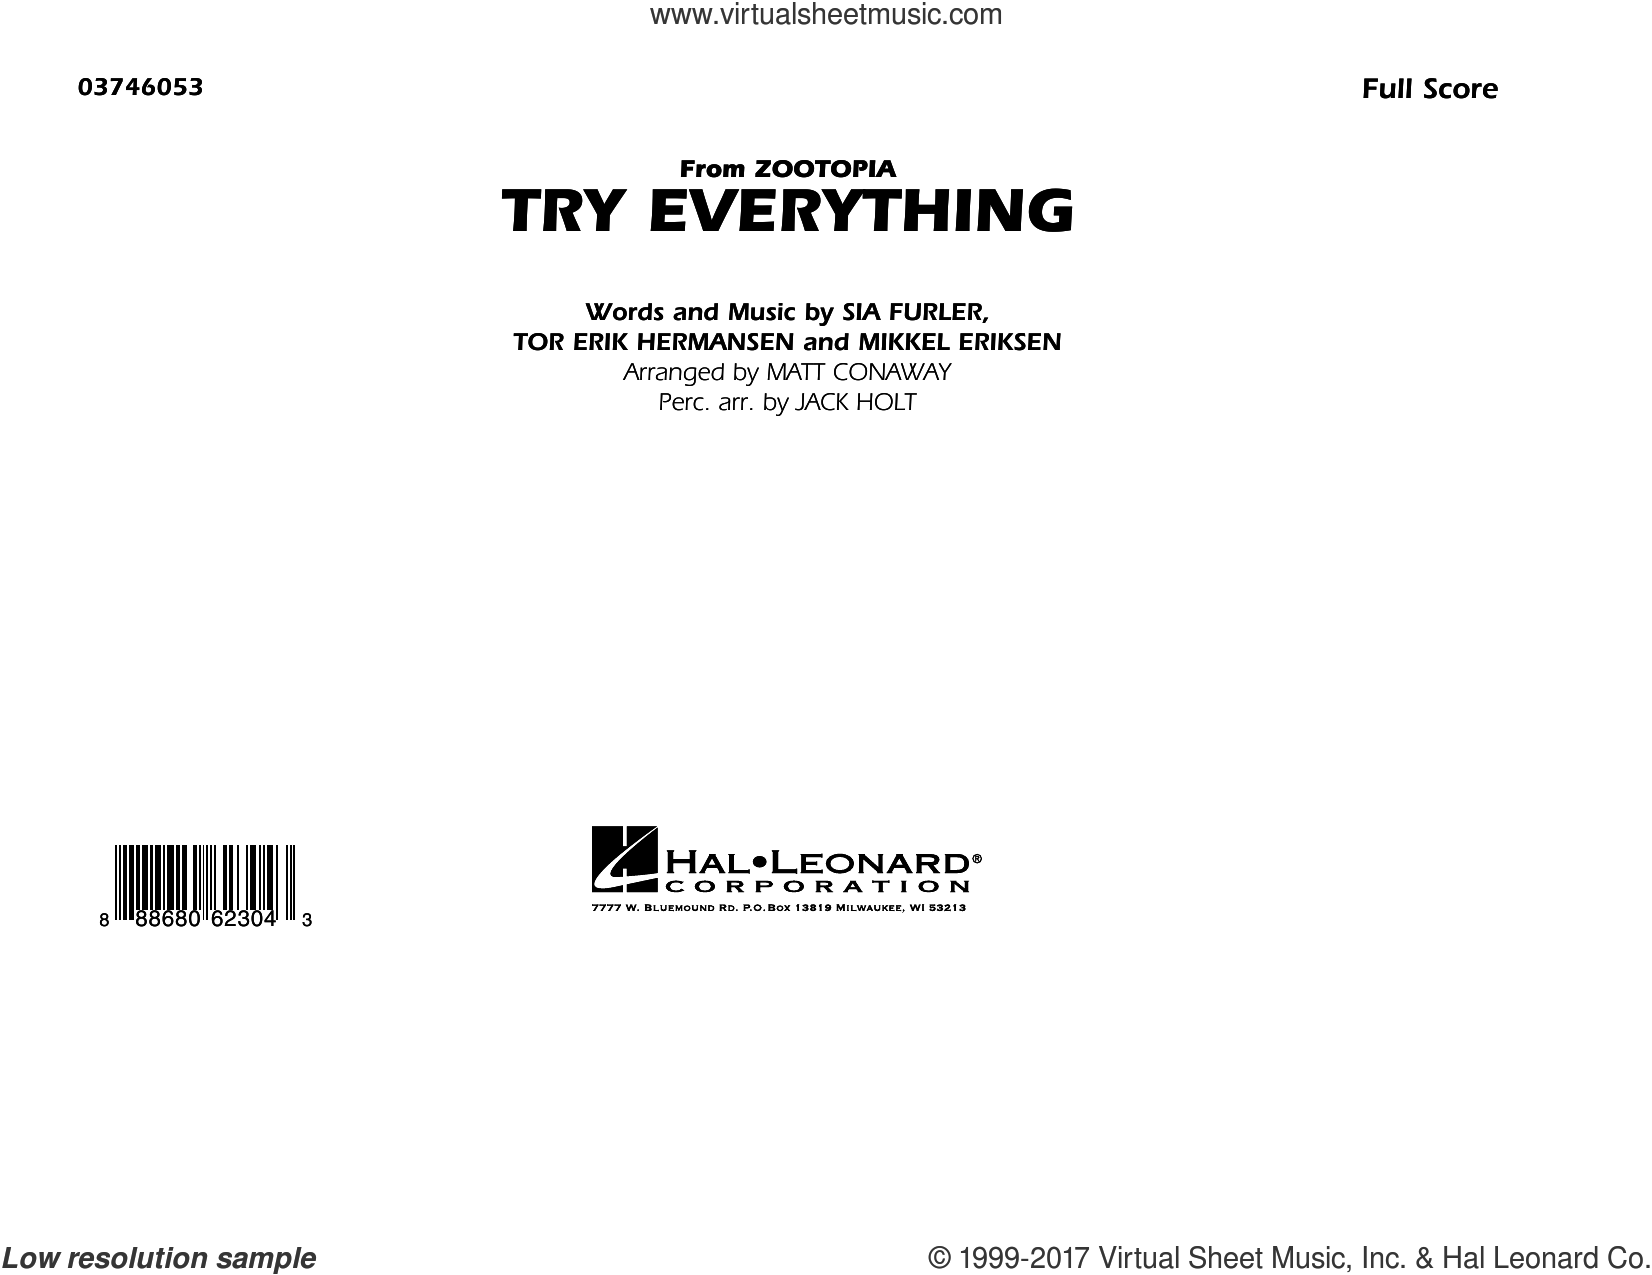 Try Everything (from Zootopia) (COMPLETE) sheet music for marching band by Shakira, Matt Conaway, Mikkel Eriksen, Sia Furler and Tor Erik Hermansen, intermediate